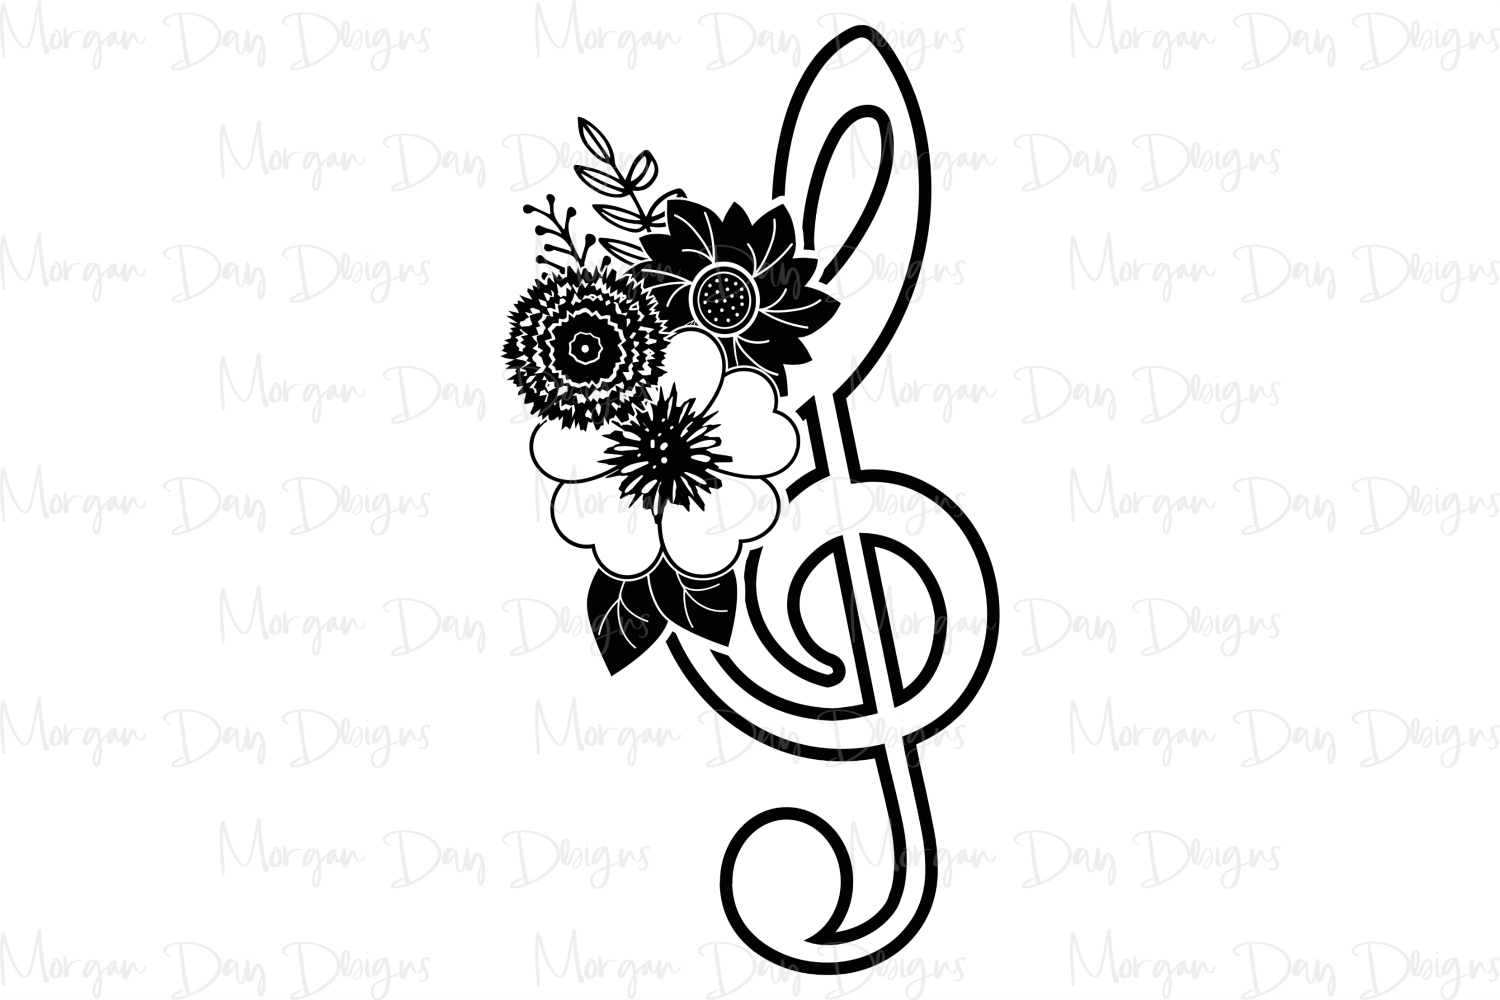 Floral Treble Clef - Band SVG, DXF, AI, EPS, PNG, JPEG example image 2